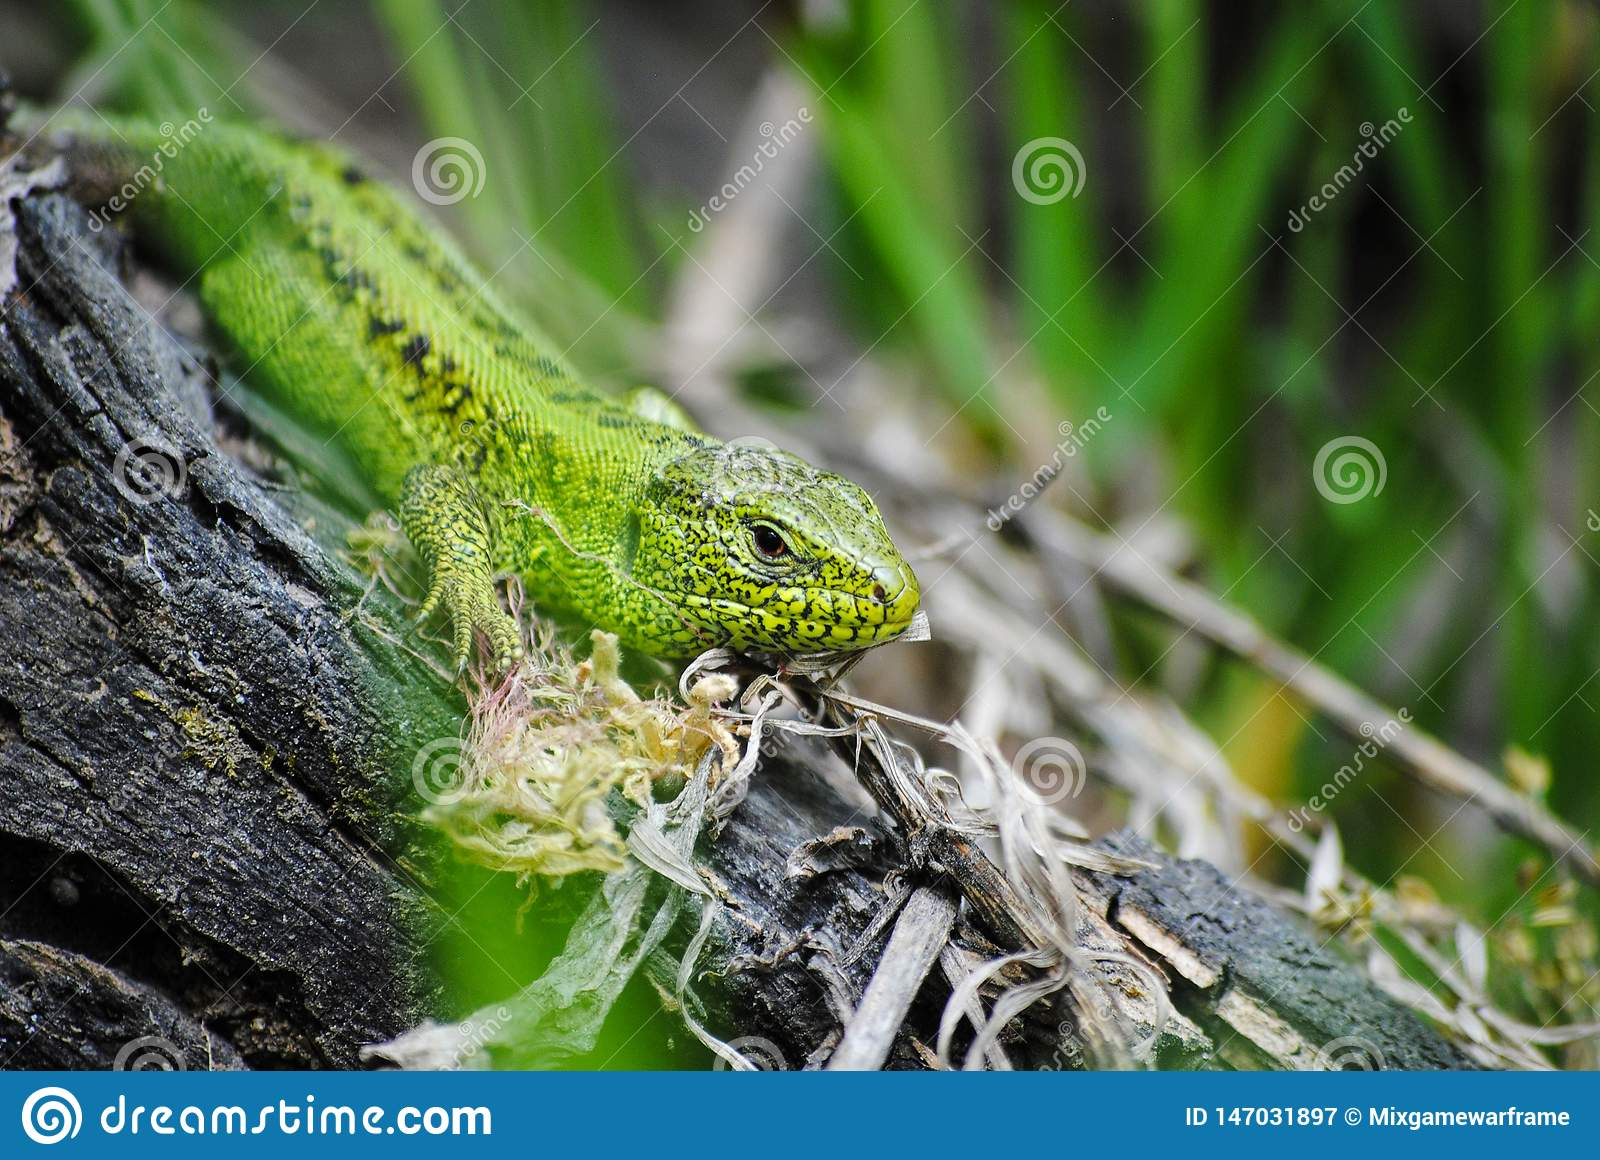 Green lizard in natural conditions